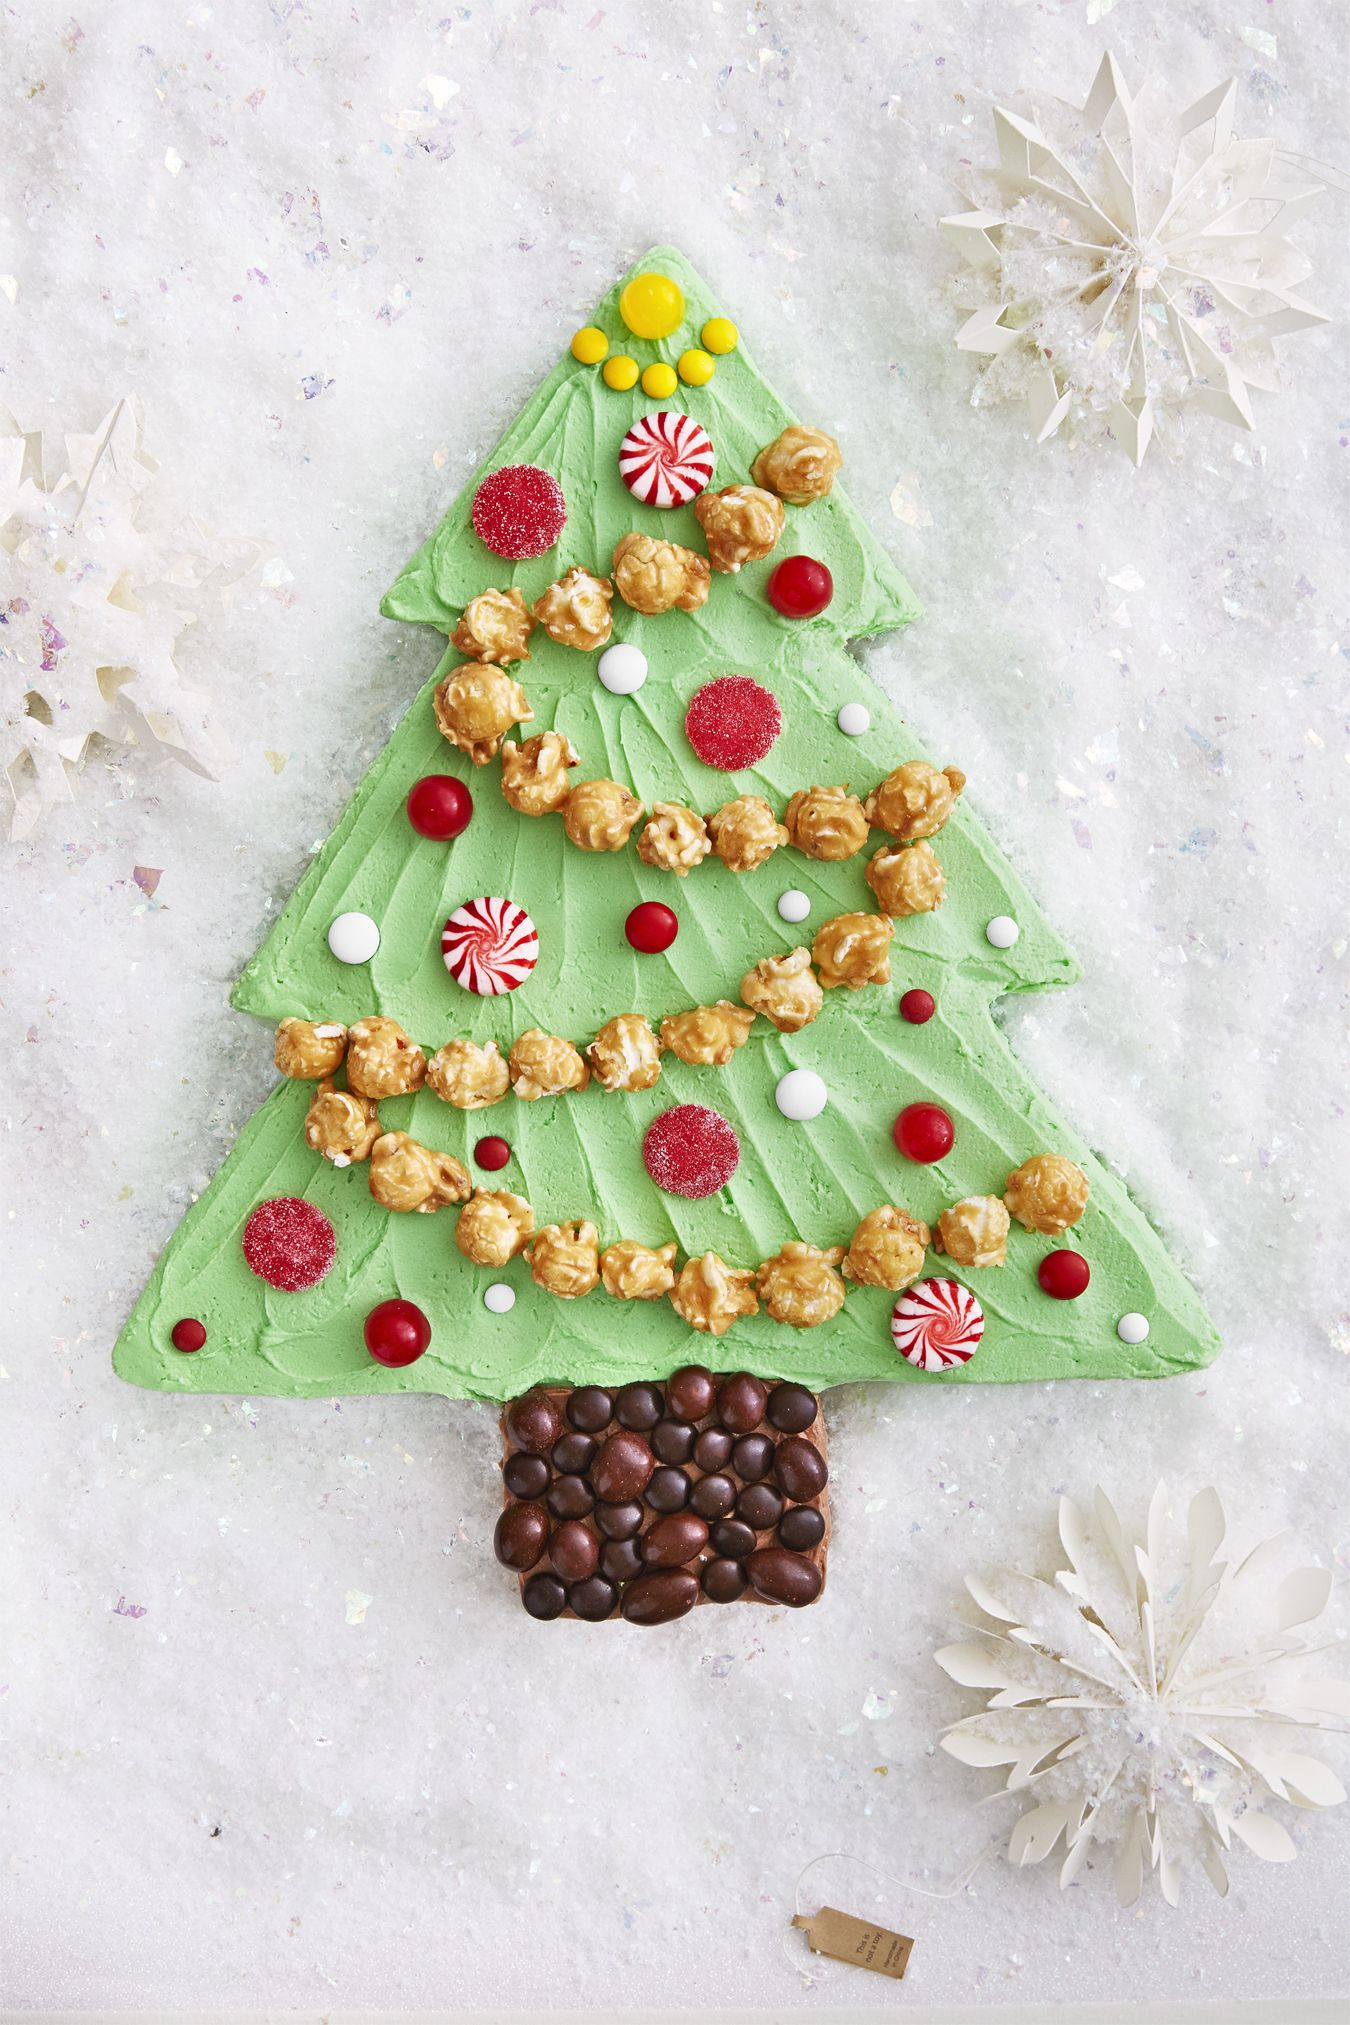 63 Homemade Christmas Food Gifts Edible Holiday Gift Ideas